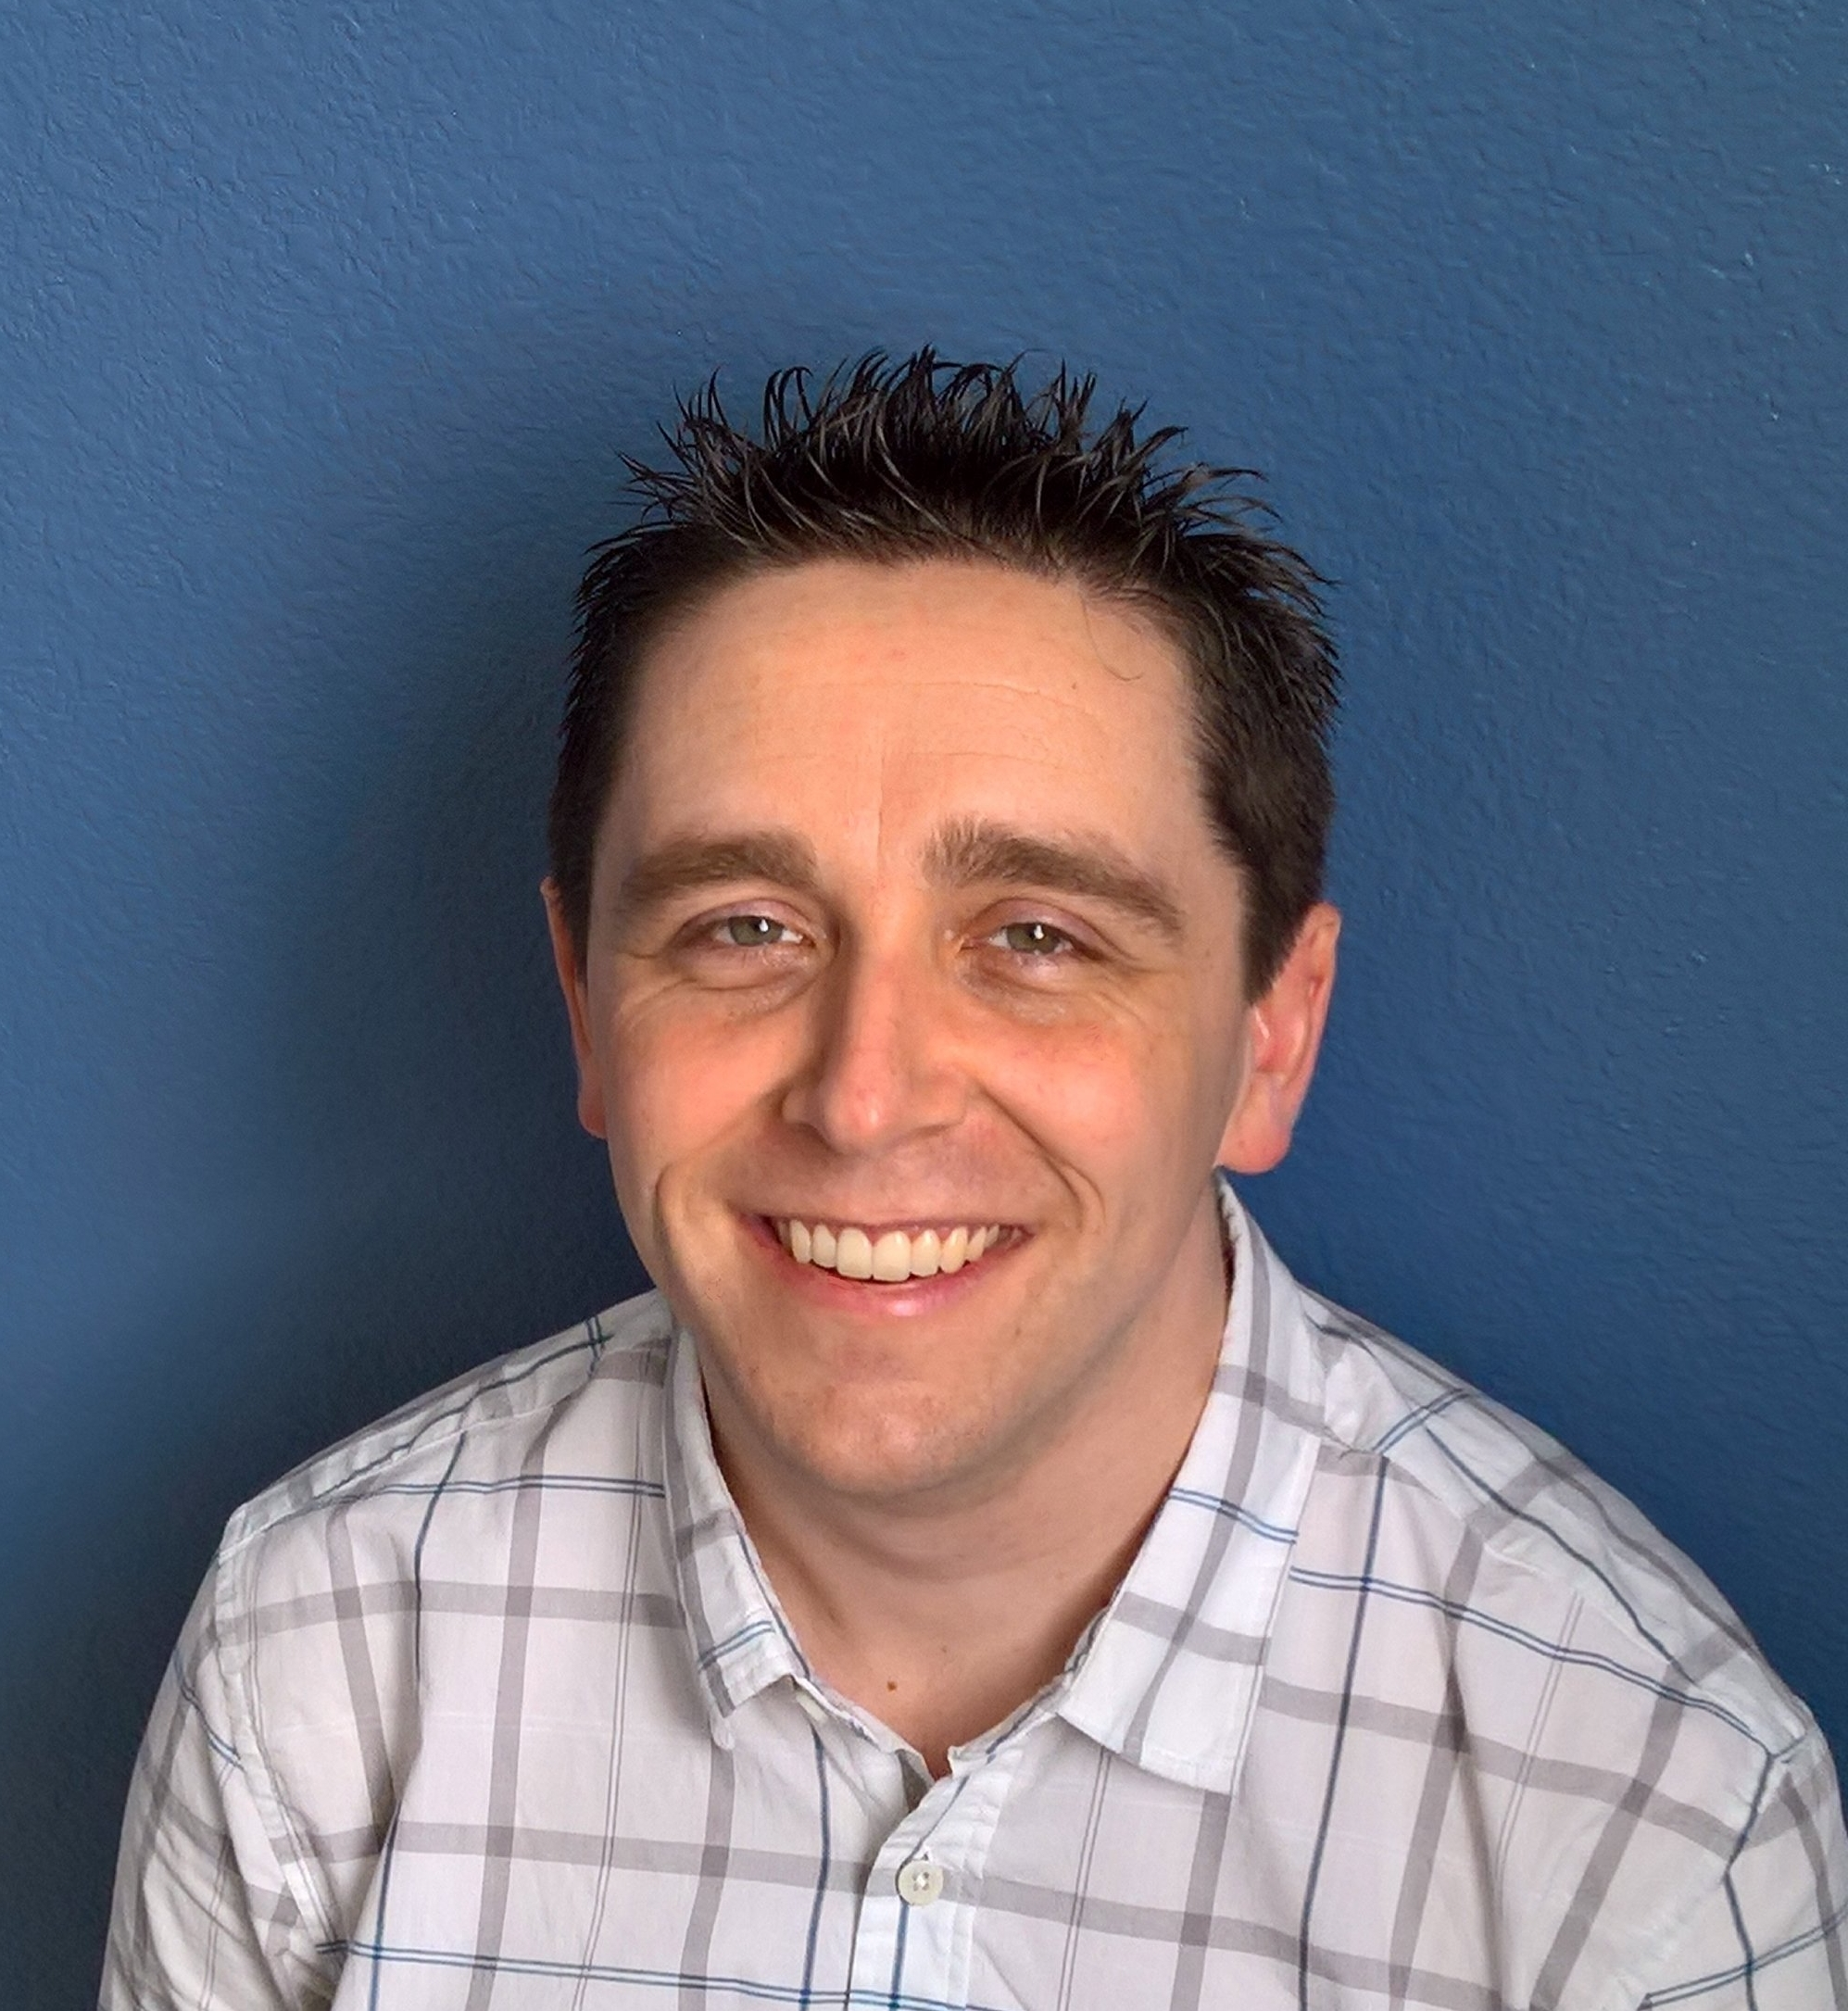 Christian Moe - Masters in Mechanical Engineering - University of California, MercedChristian Moe is the Creative Director and the CEO of Tau Ceti Labs. He holds a Masters in Mechanical Engineering from the University of California, Merced. Through the years he has developed numerous engineering simulations spanning from radiative heat transfer to fluid dynamics. He currently uses that experience to develop simulations with minimal CPU overhead, implements engineering concepts into our game designs and performs general game development.